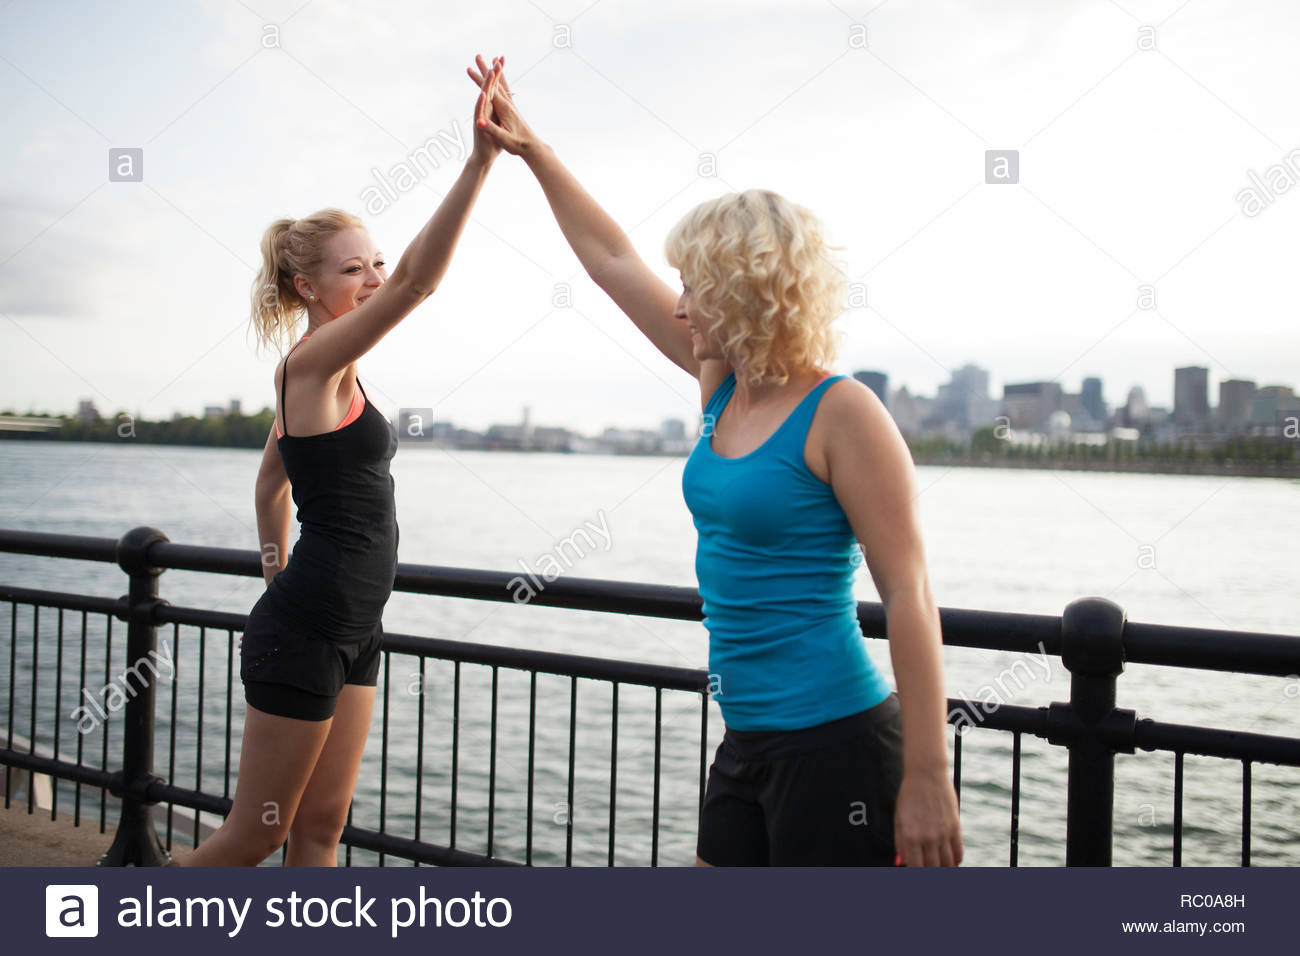 Two sisters clapping during workout together, Montreal, Quebec, Canada Stock Photo